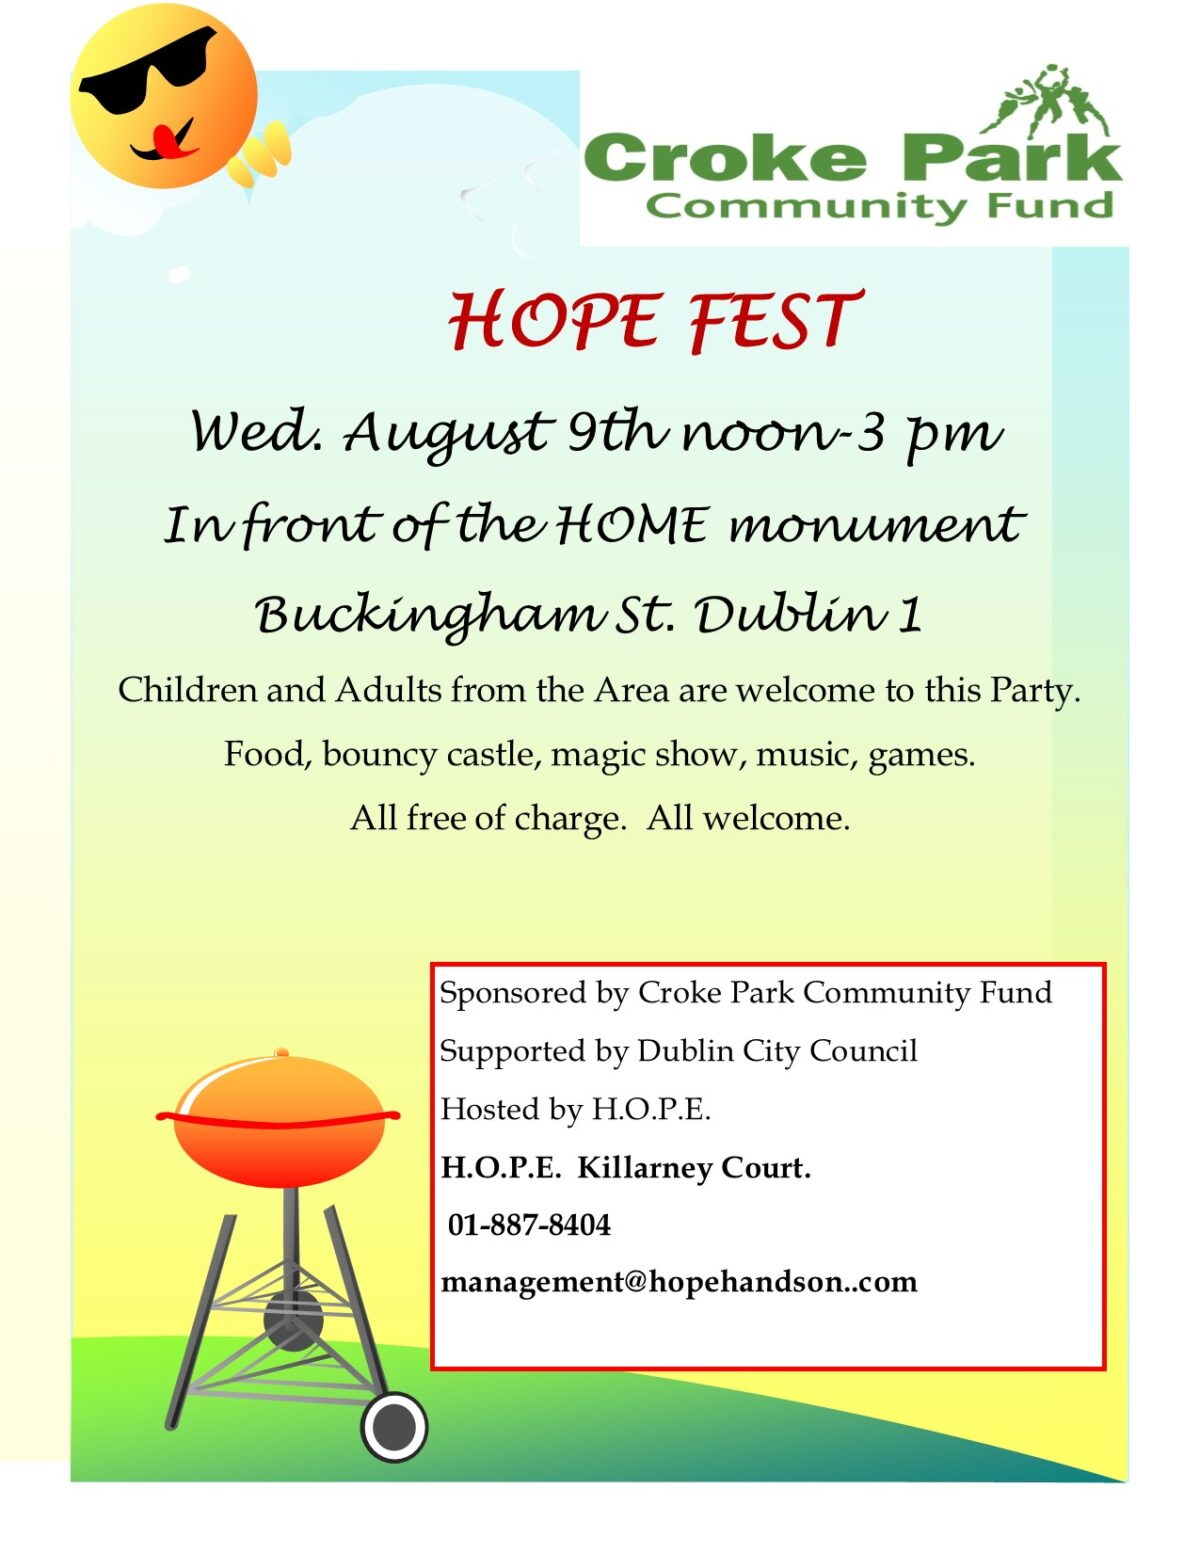 HOPE-FEST'17 [no typos] [please share]